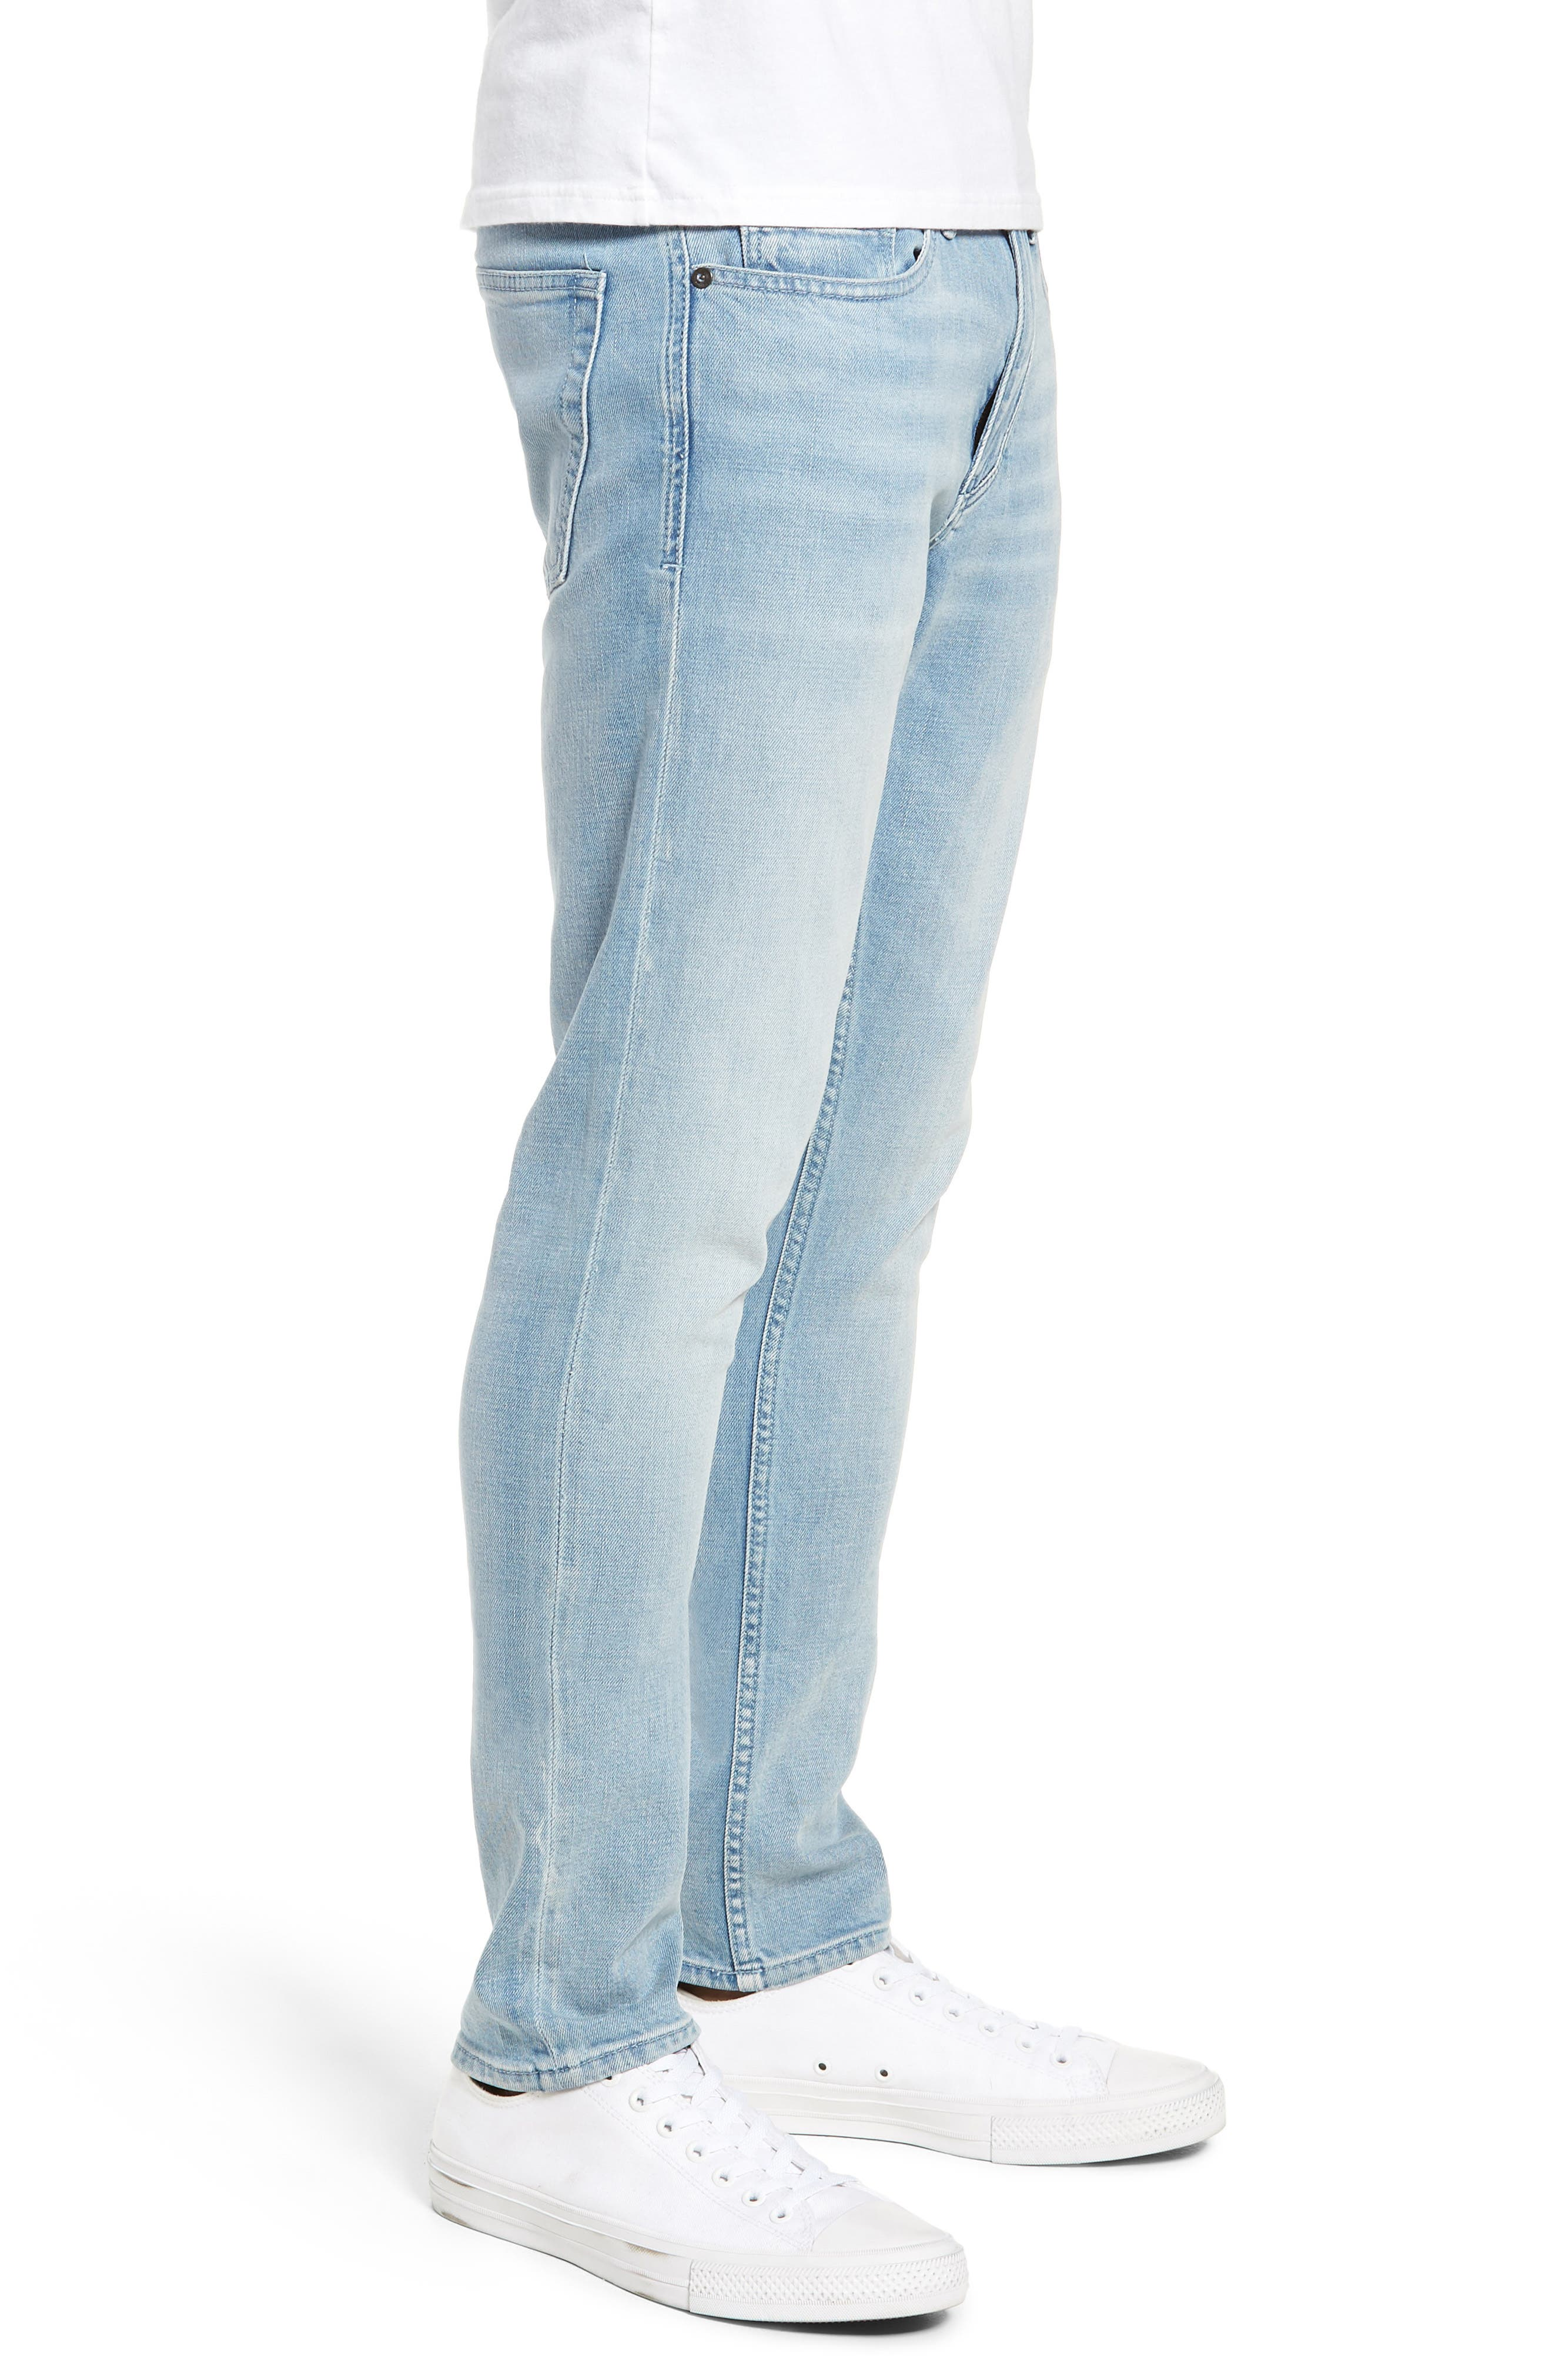 Horatio Skinny Fit Jeans,                             Alternate thumbnail 3, color,                             450